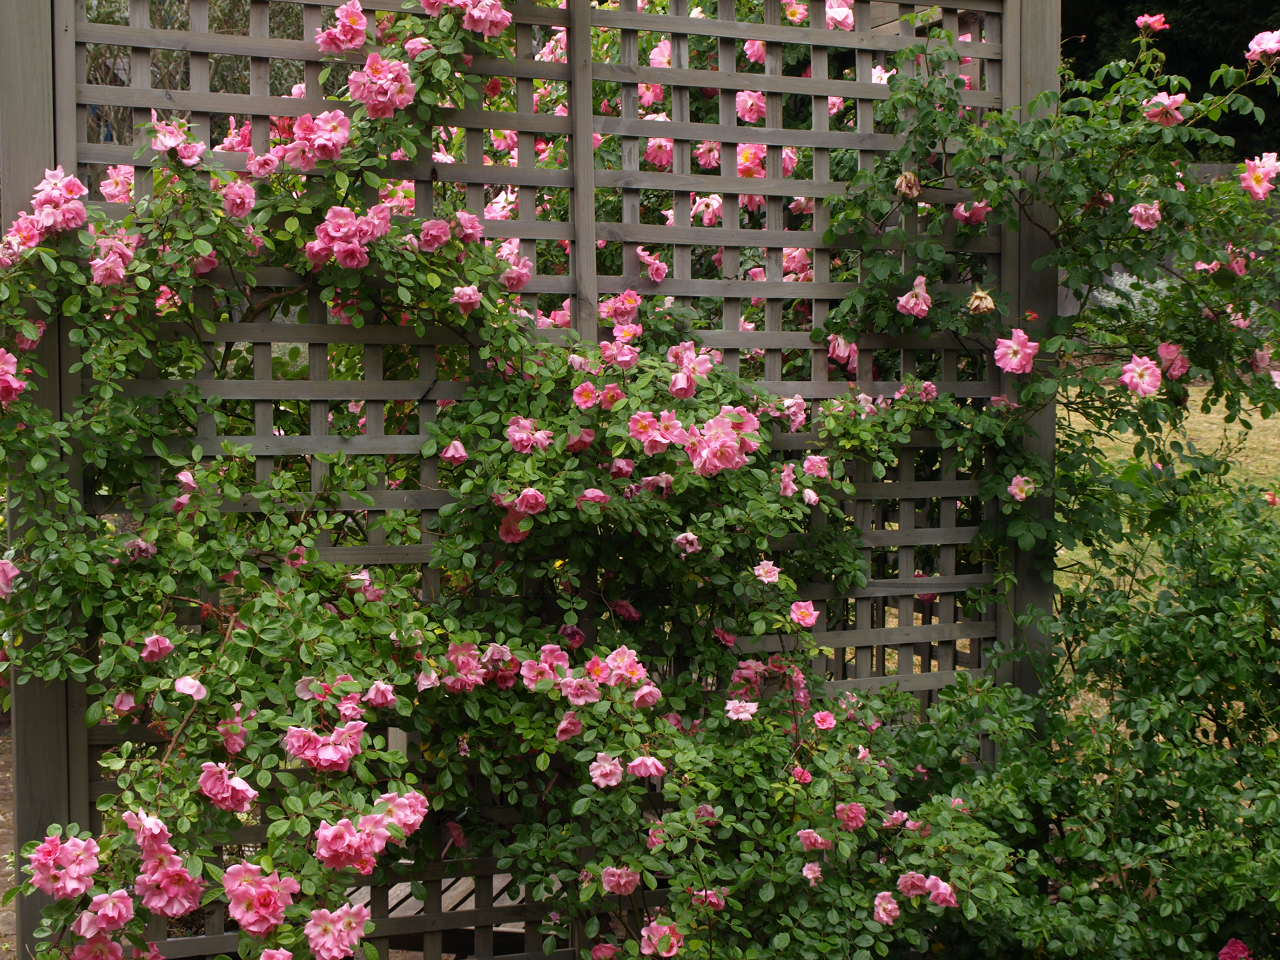 Climbing rose, placed on a vertical support.